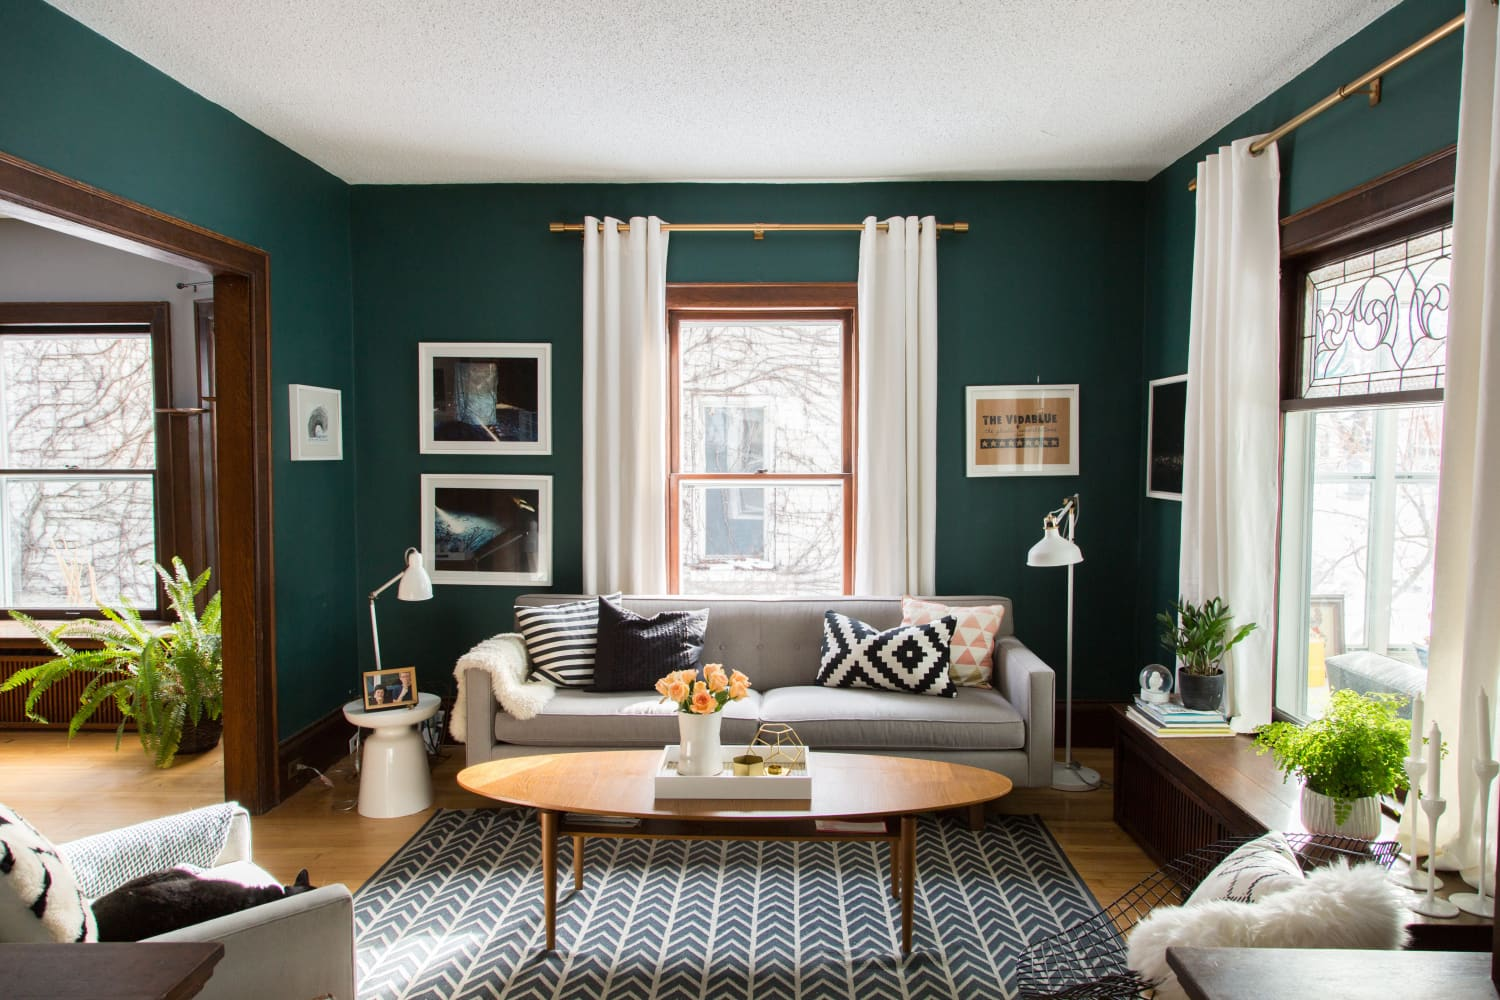 The Foolproof Way To Paint A Room In Just A Few Easy Steps